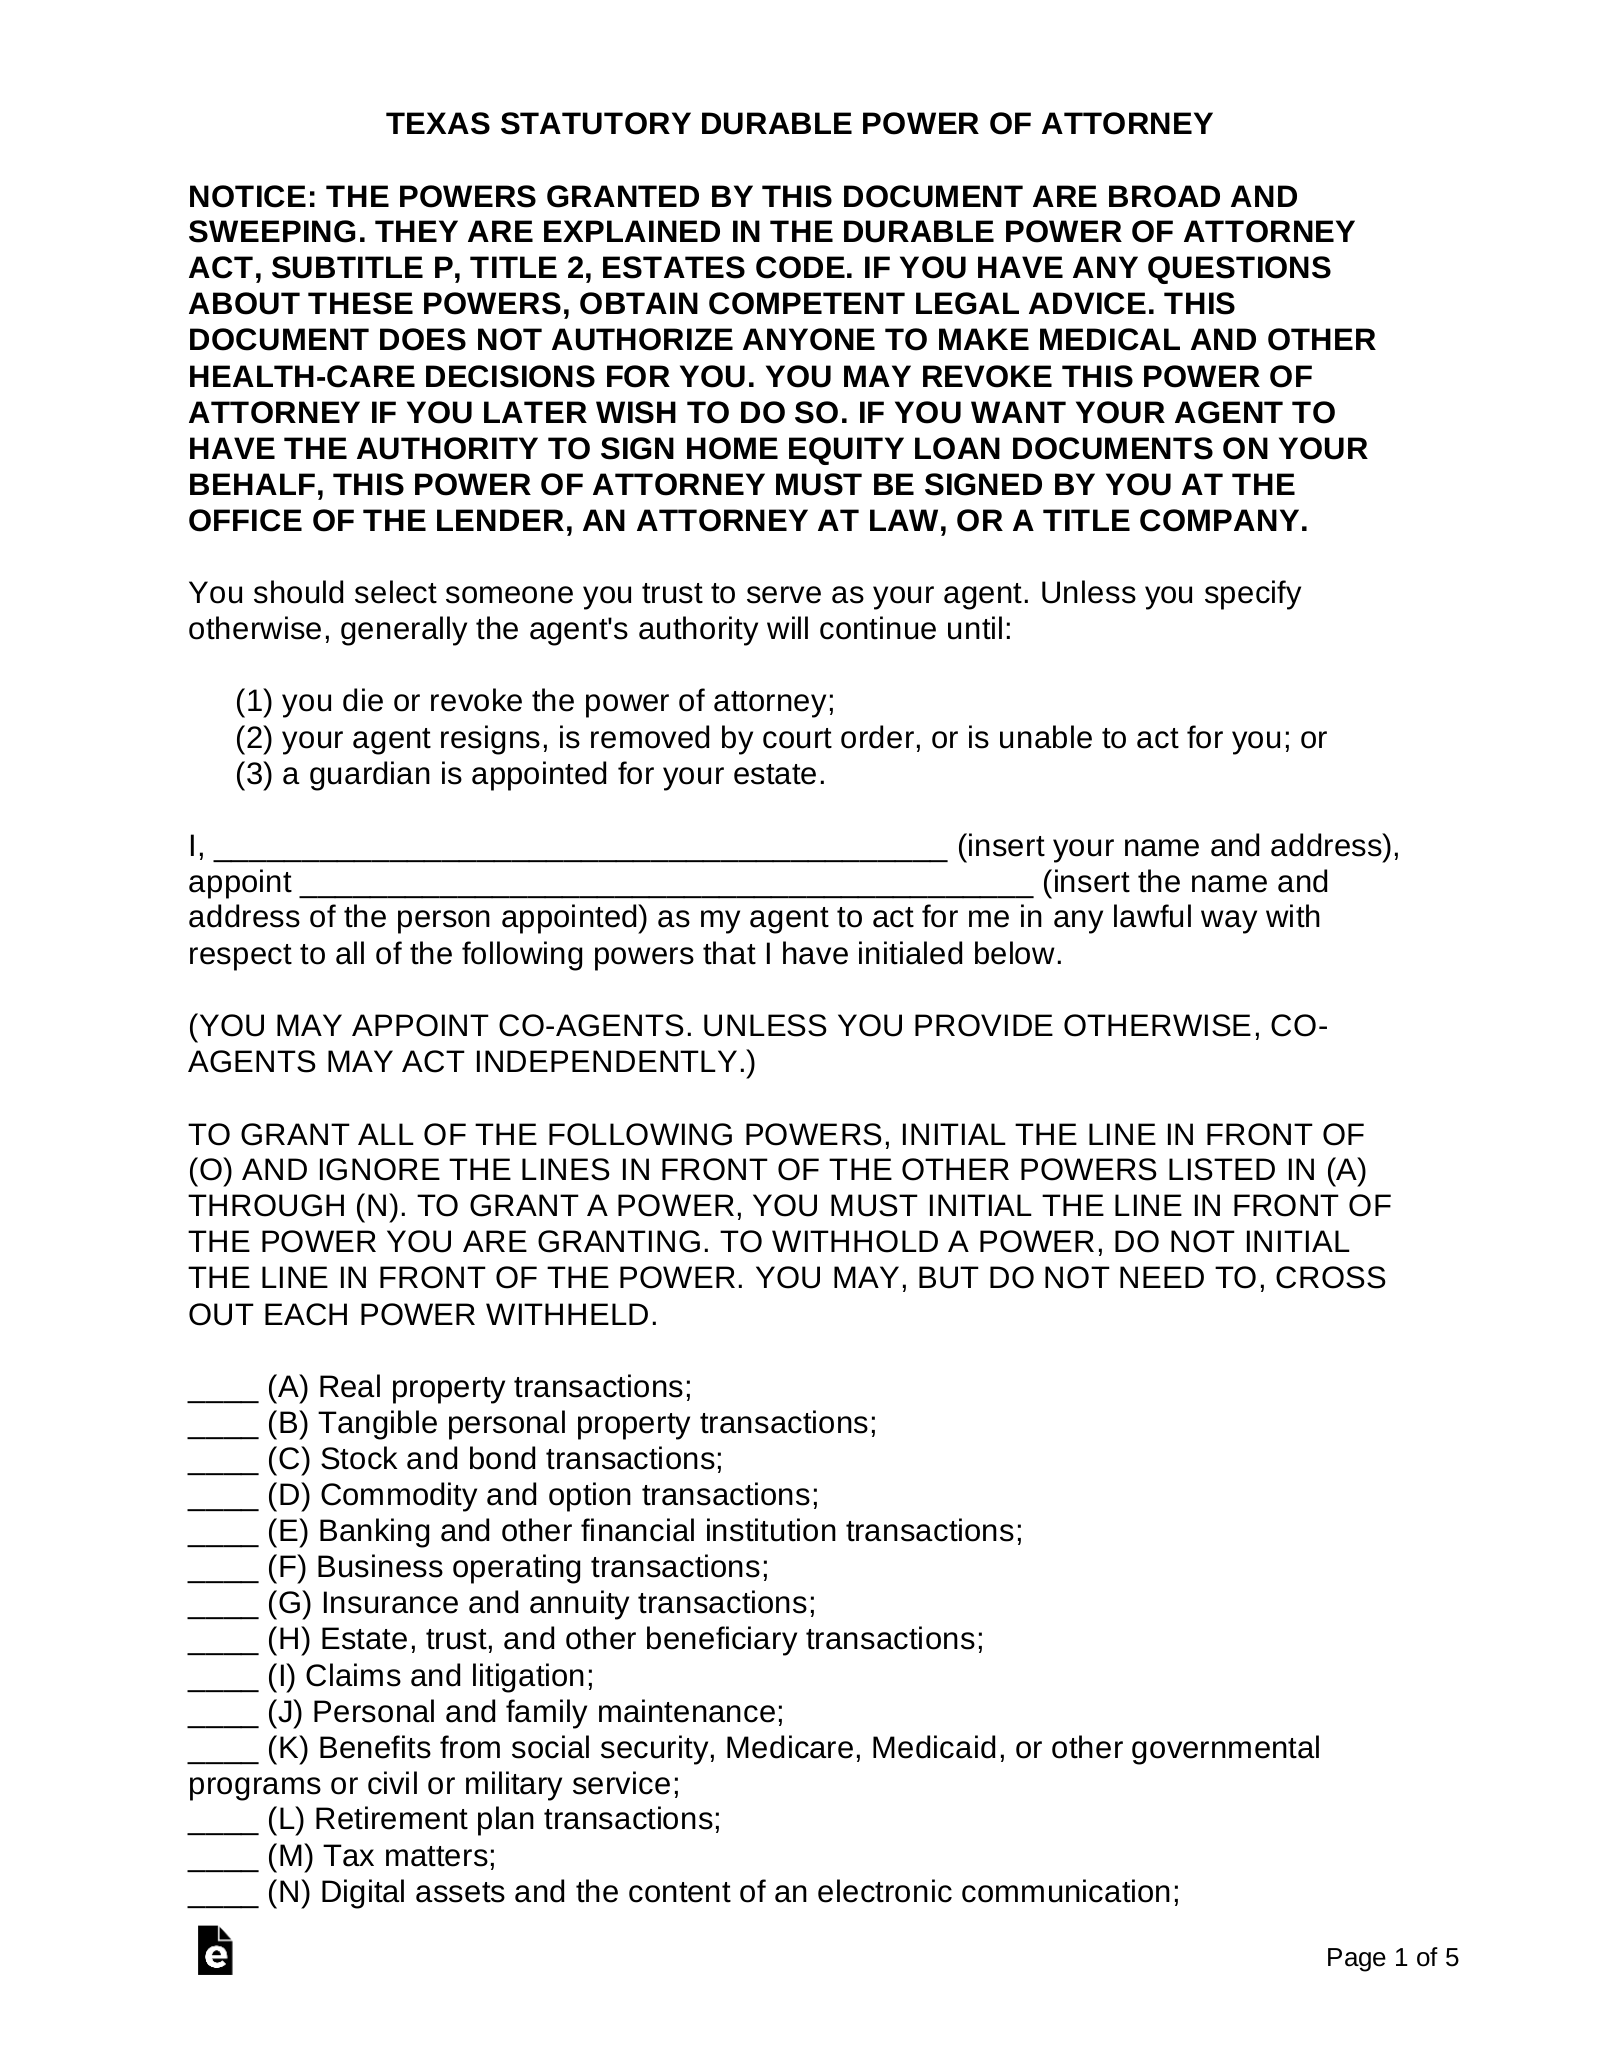 Free Texas Power of Attorney Forms - Word | PDF | eForms ... on bill of sale ny, lease agreement form ny, notice form ny, notary public form ny, tax exempt form ny, general release form ny,